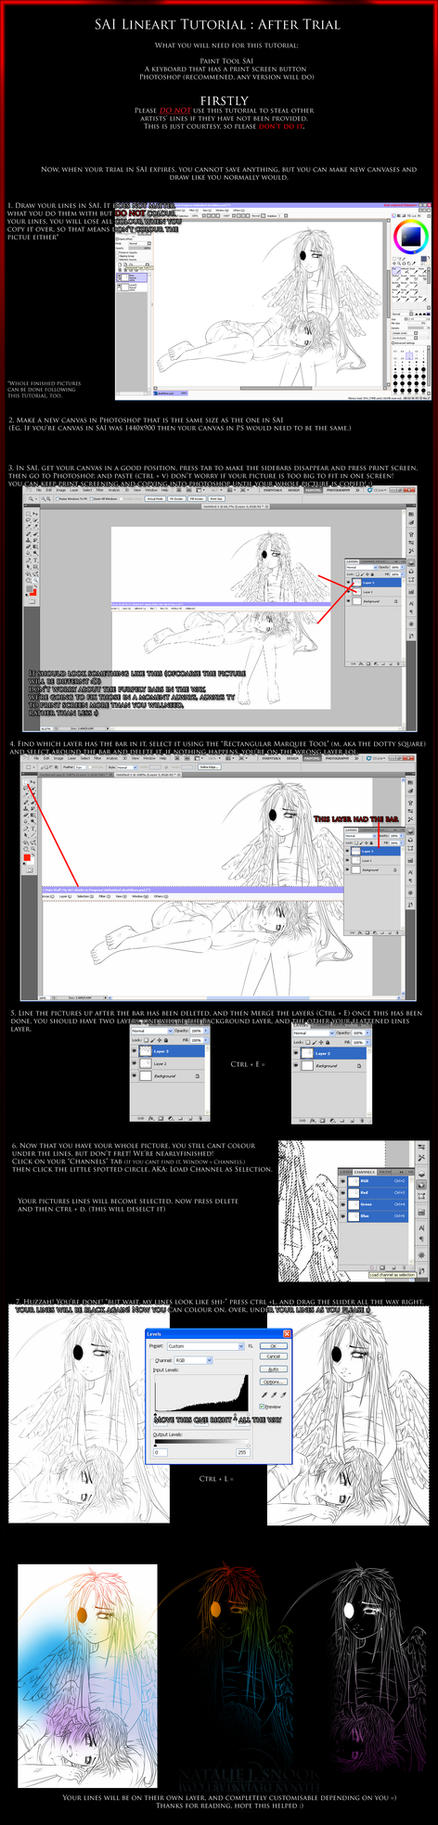 how to make photoshop like sai